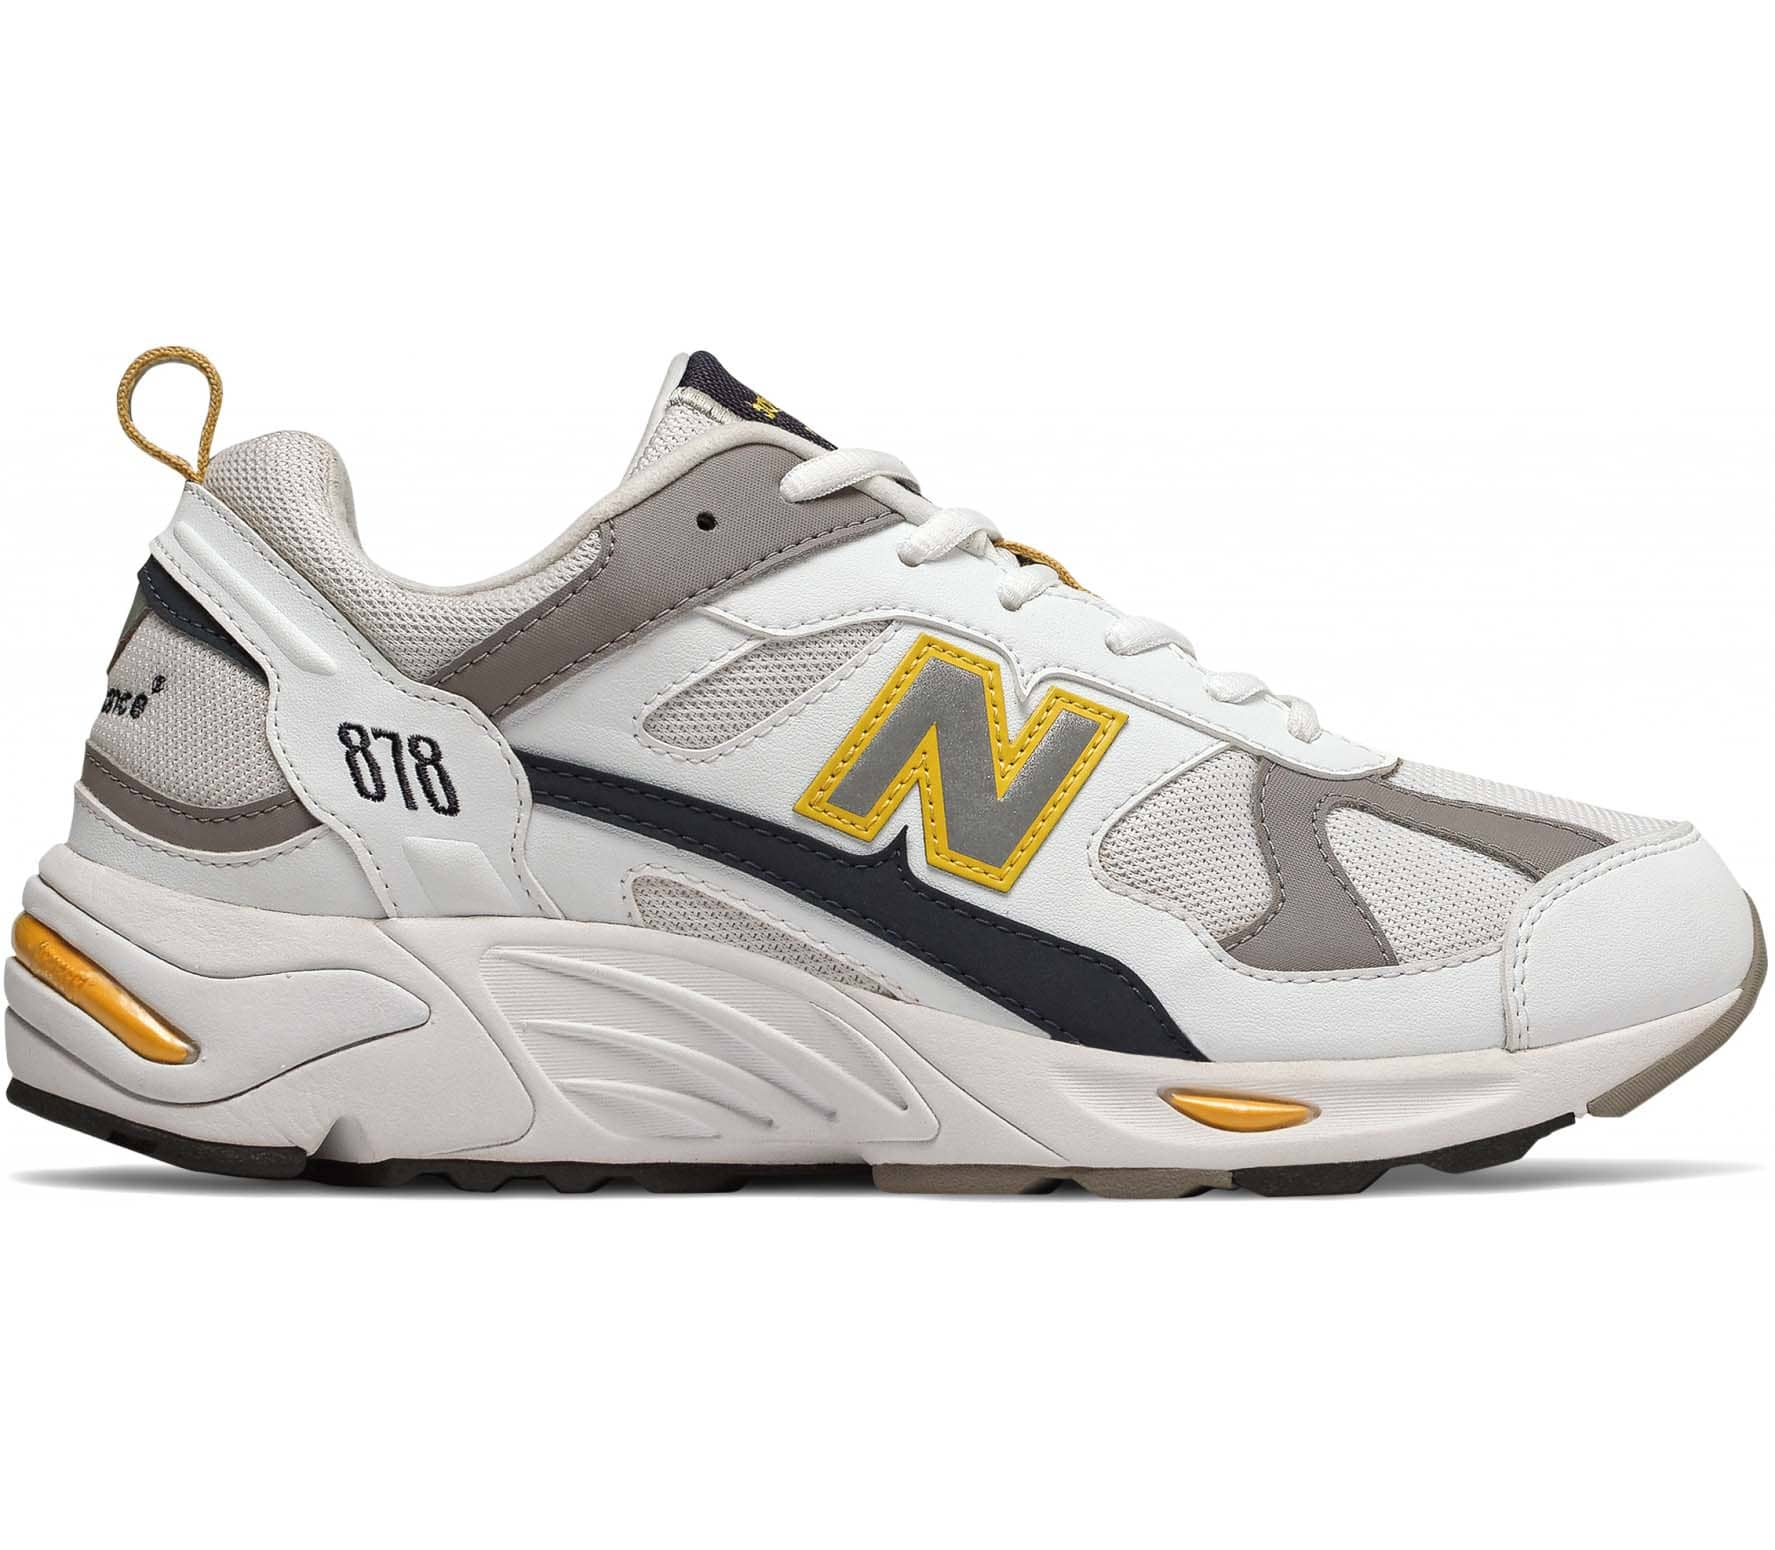 new product 3ed95 b33a5 New Balance 878 Unisex Sneakers white